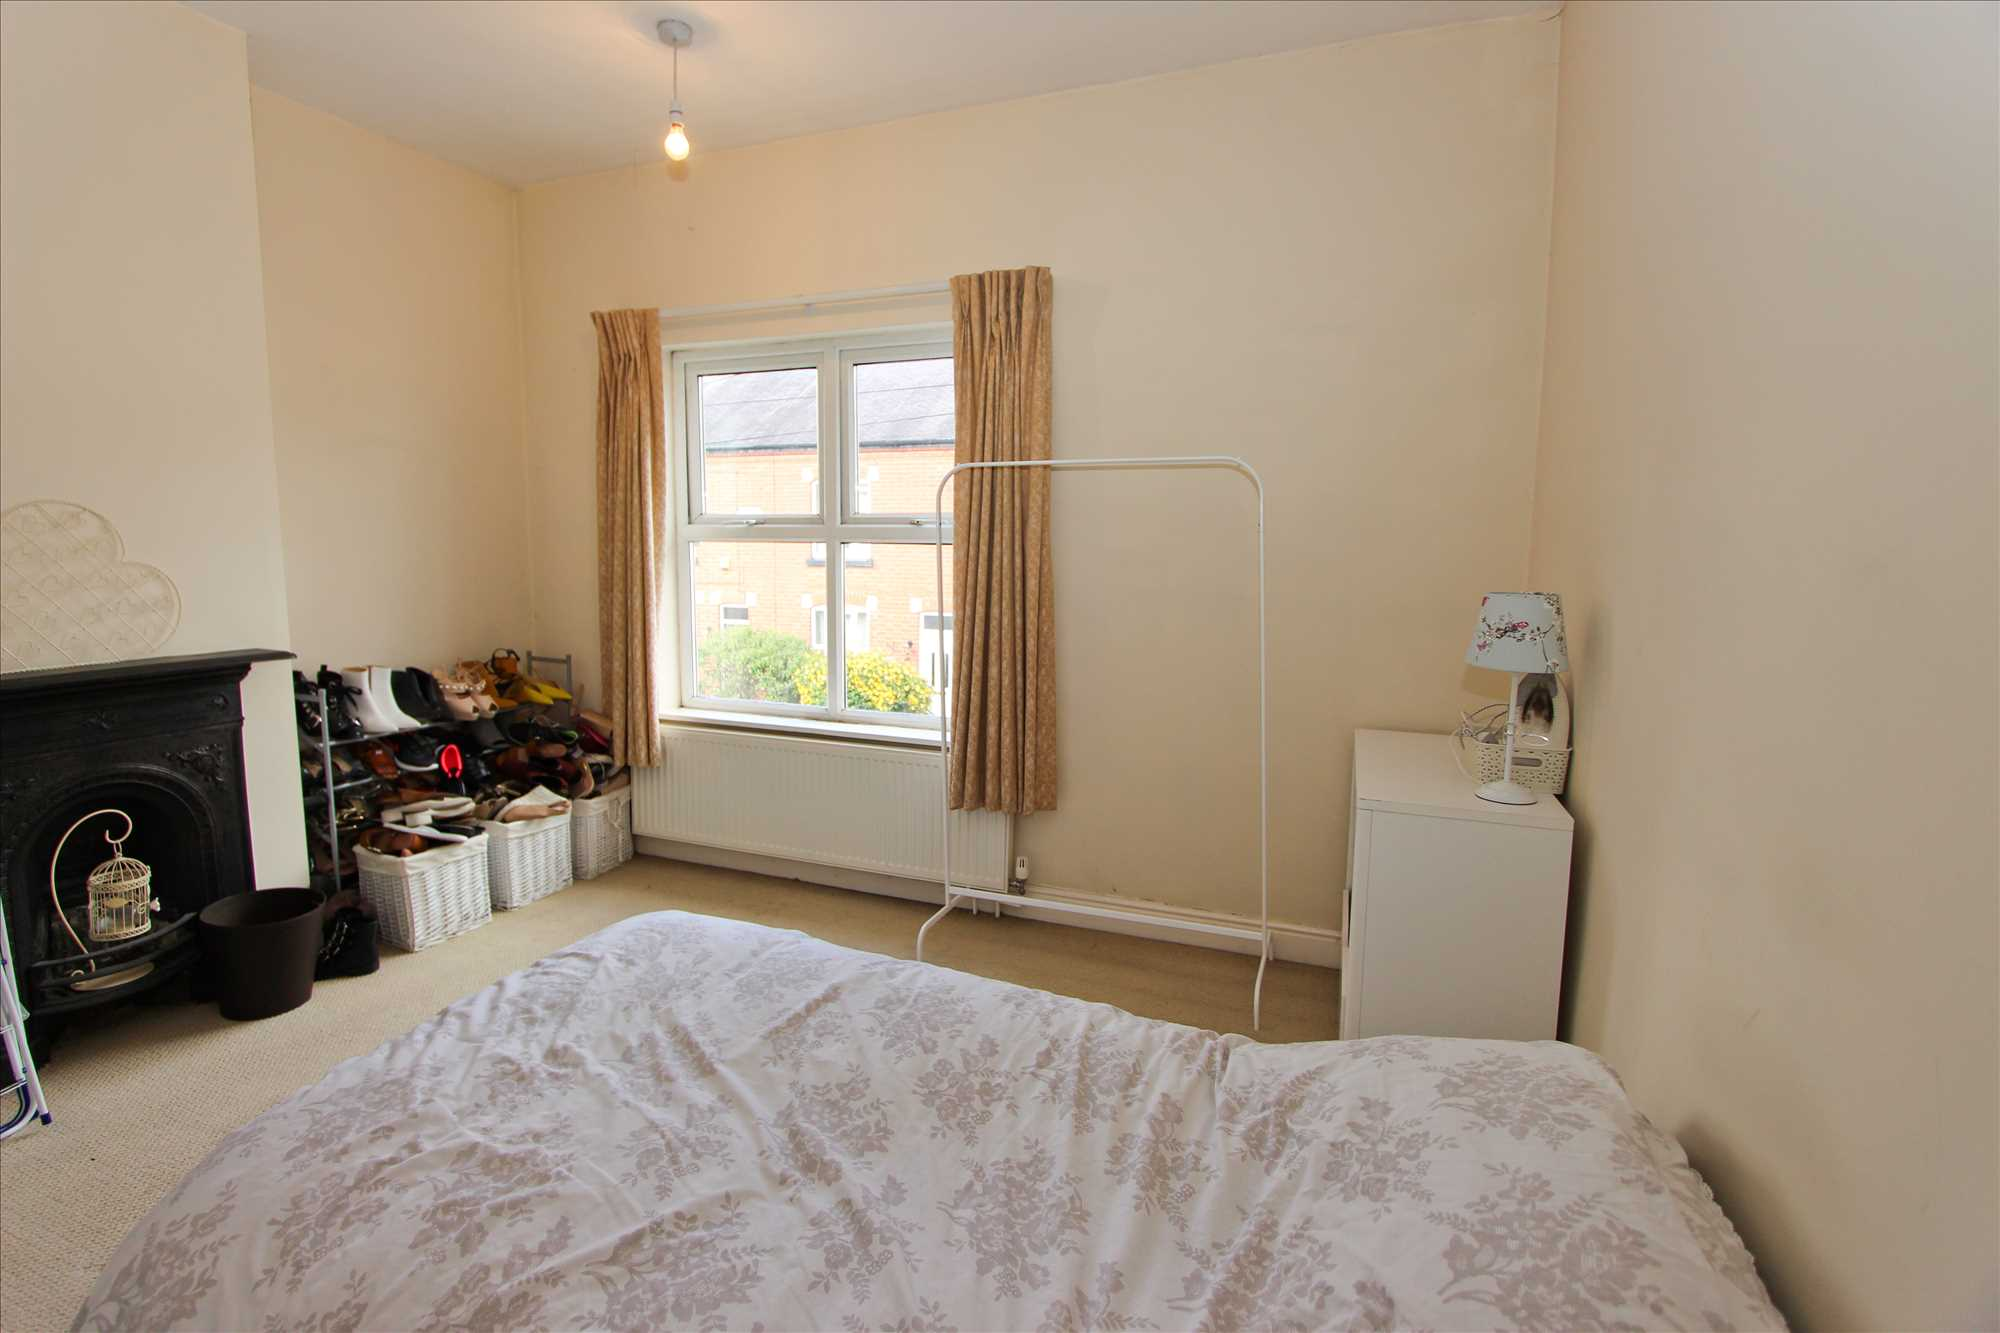 Property Image Bedroom